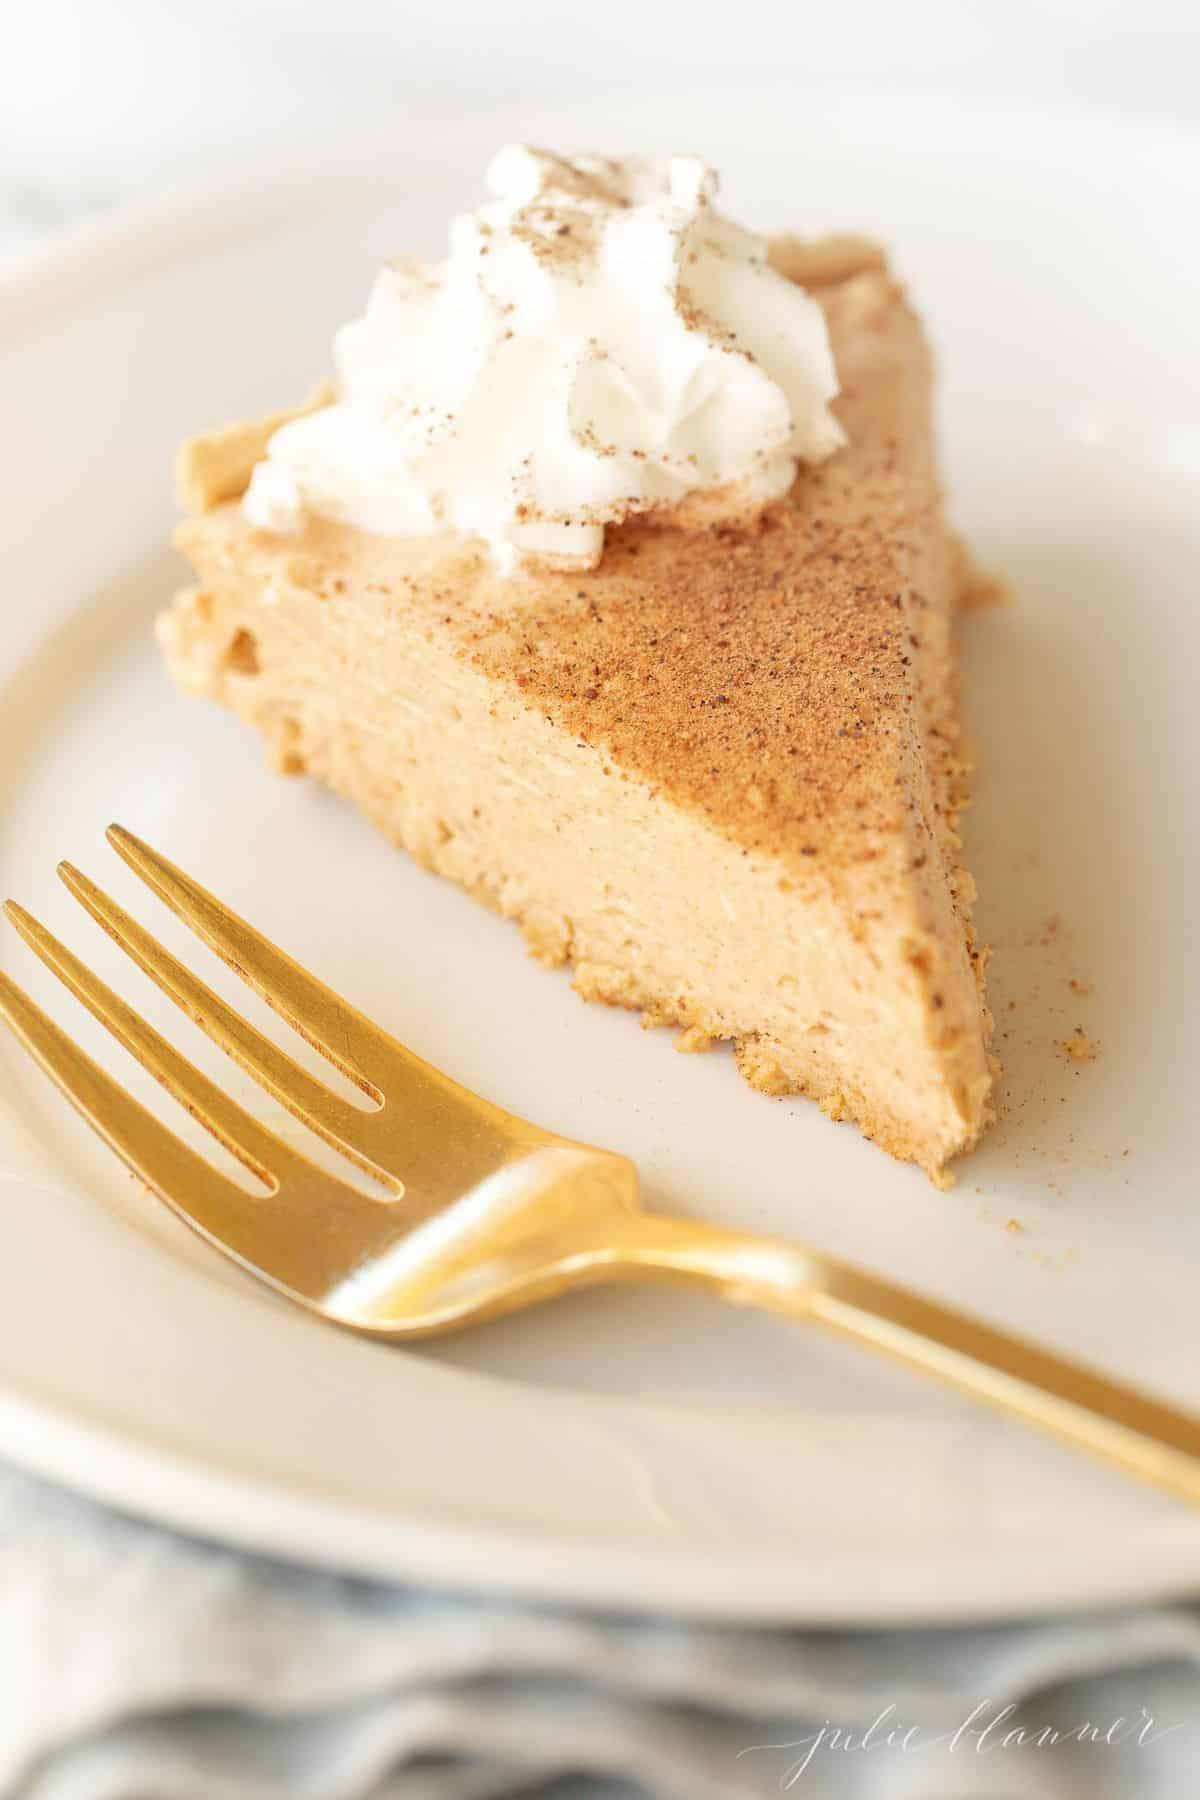 White plate with a slice of no bake pumpkin cheesecake, gold fork to the side.